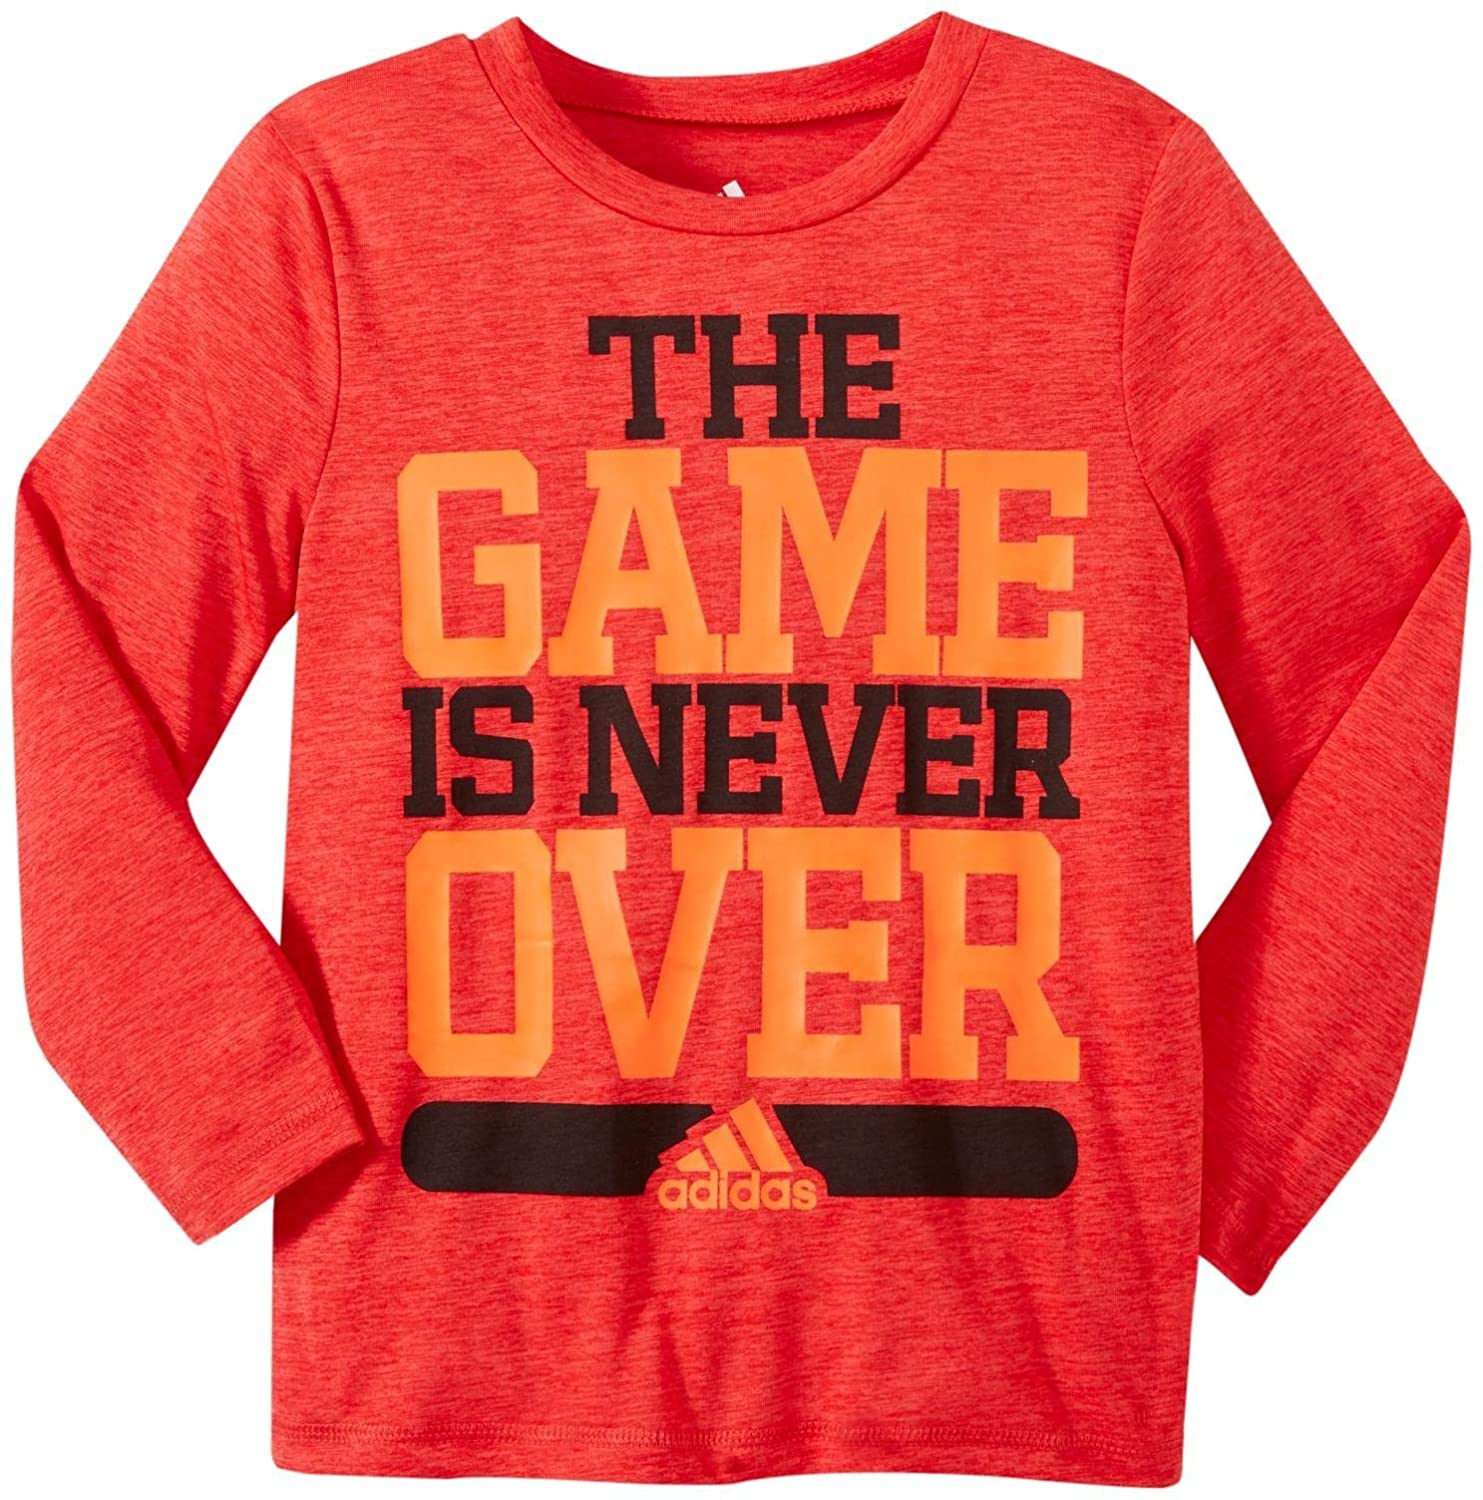 purchase cheap cf438 d6334 Amazon.com  adidas Little Boys Never Over Tee (Toddler Kid) - Bright Red -  4T  Clothing